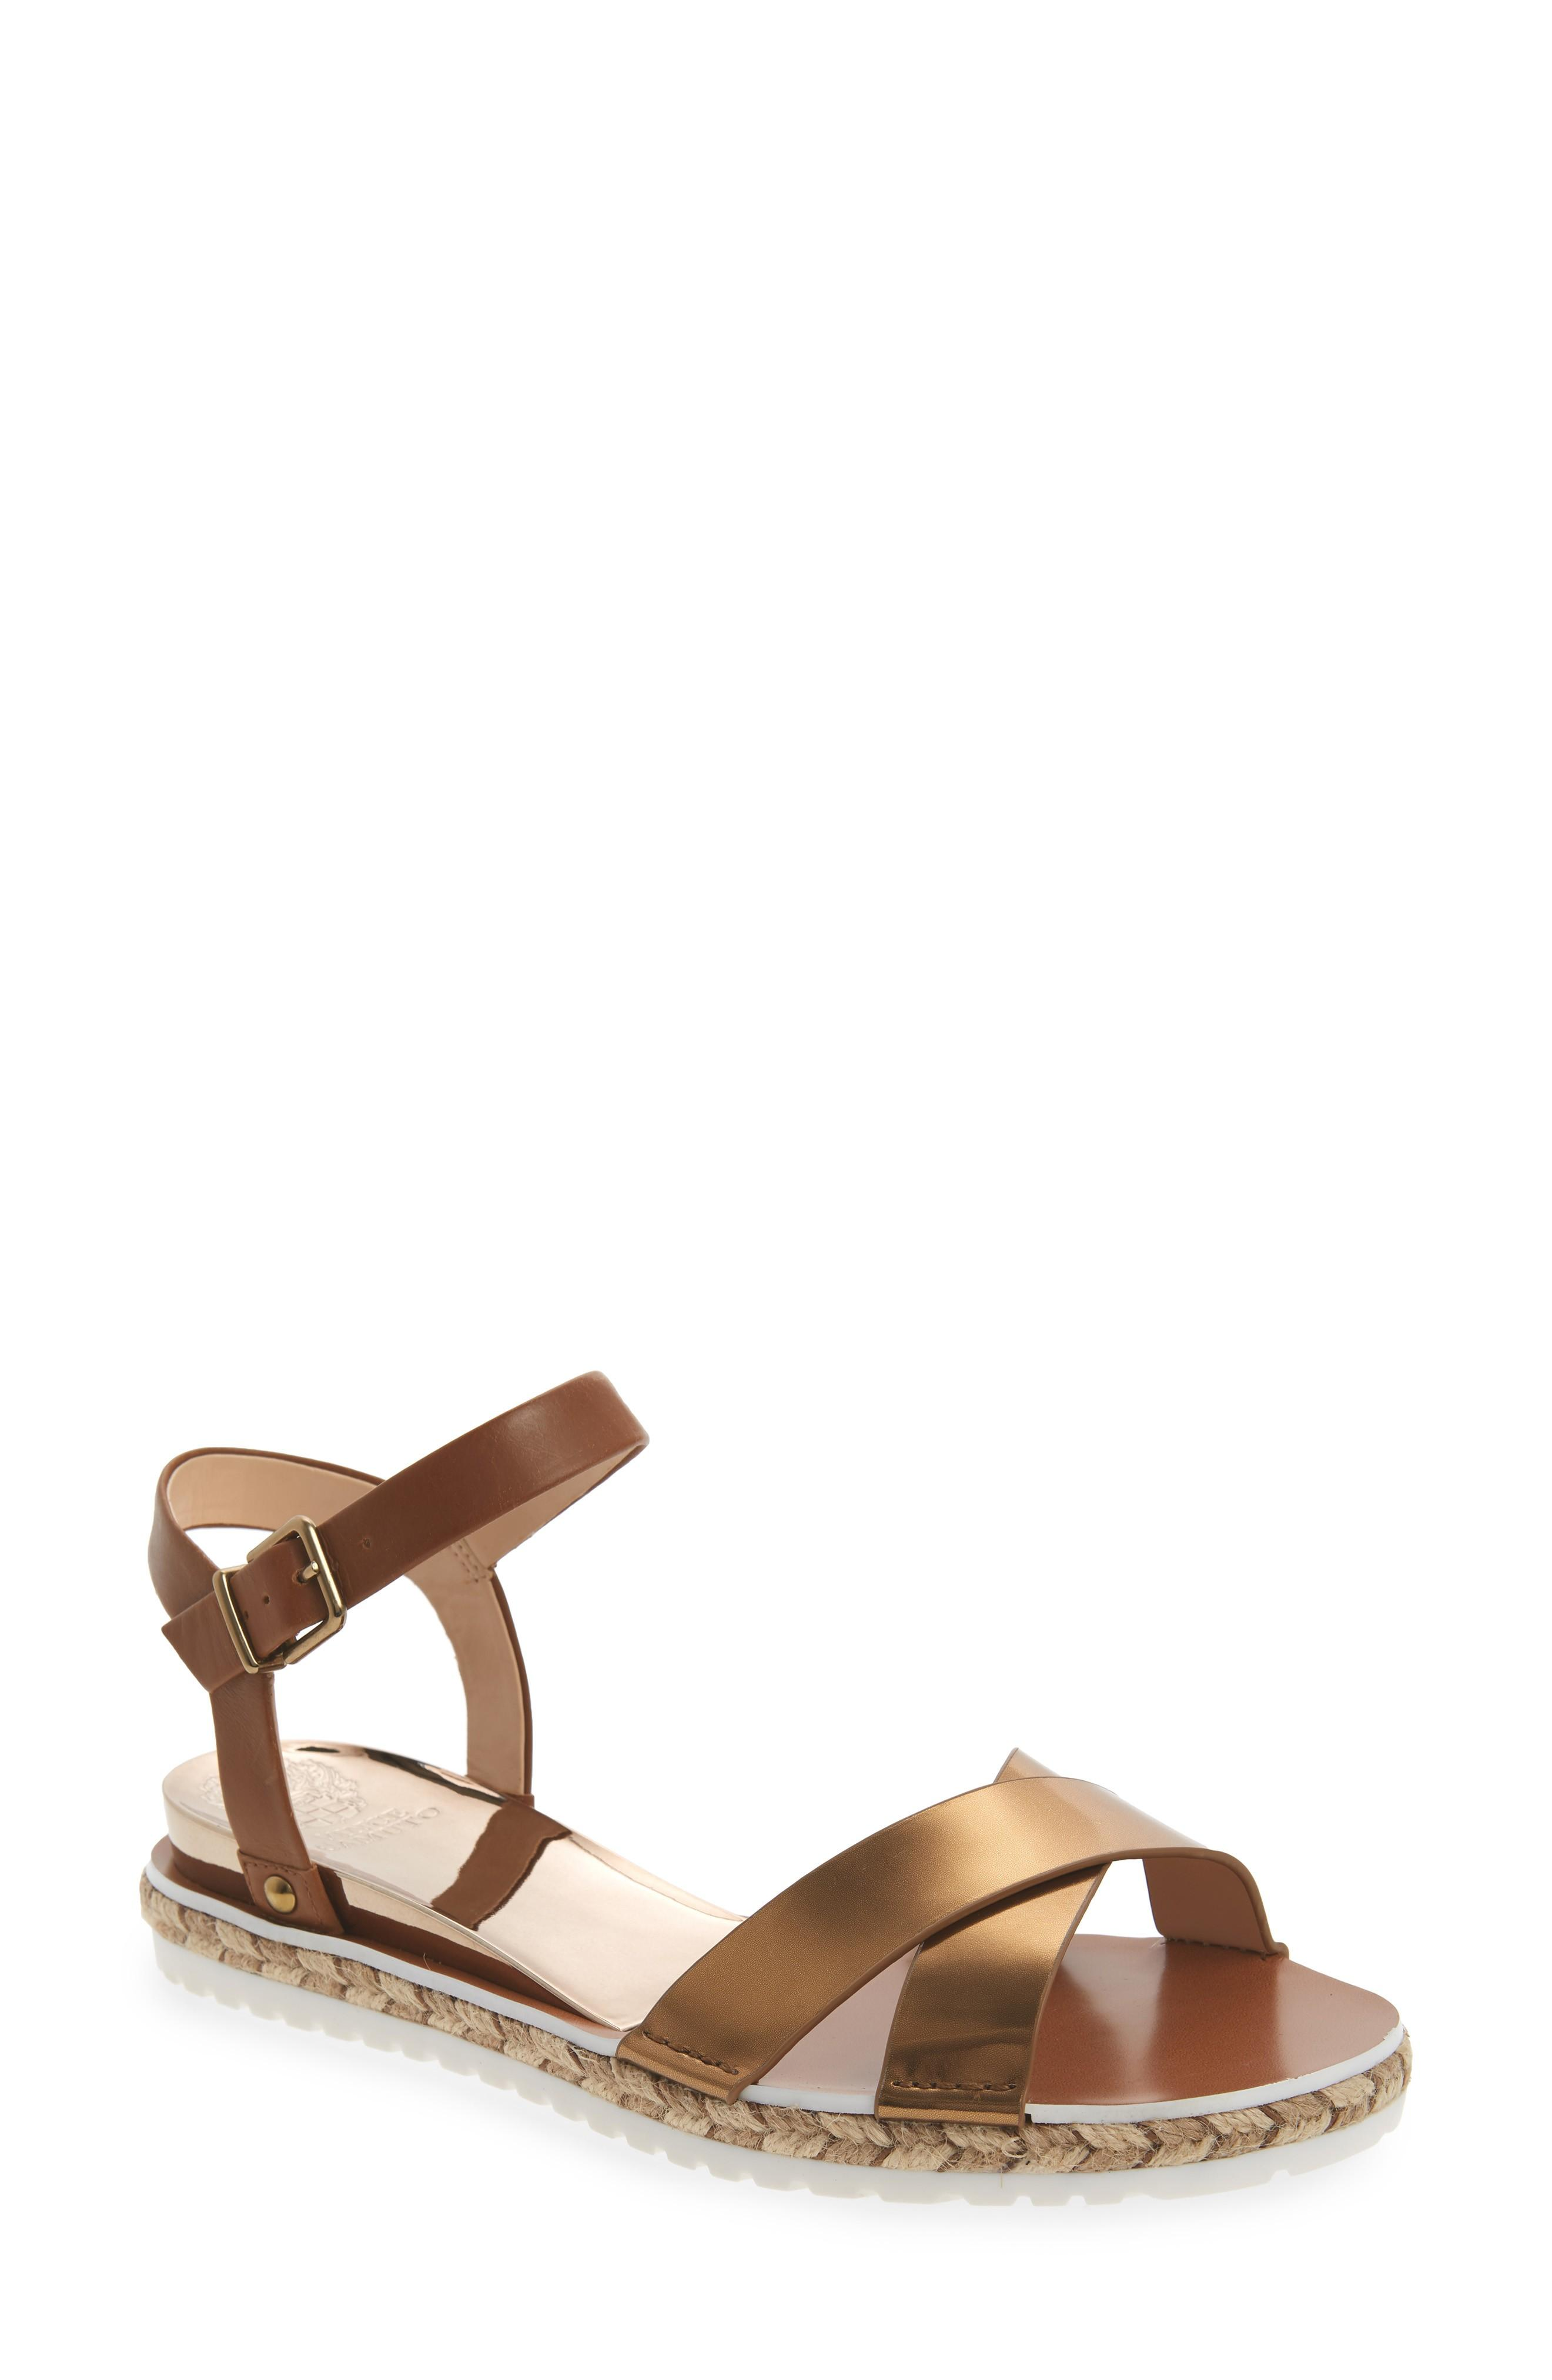 c087545075f Espadrille trim and a slim wedge heel add breezy sophistication to a  minimalist ankle-strap sandal. Style Name  Vince Camuto Kankitta Sandal  (Women).